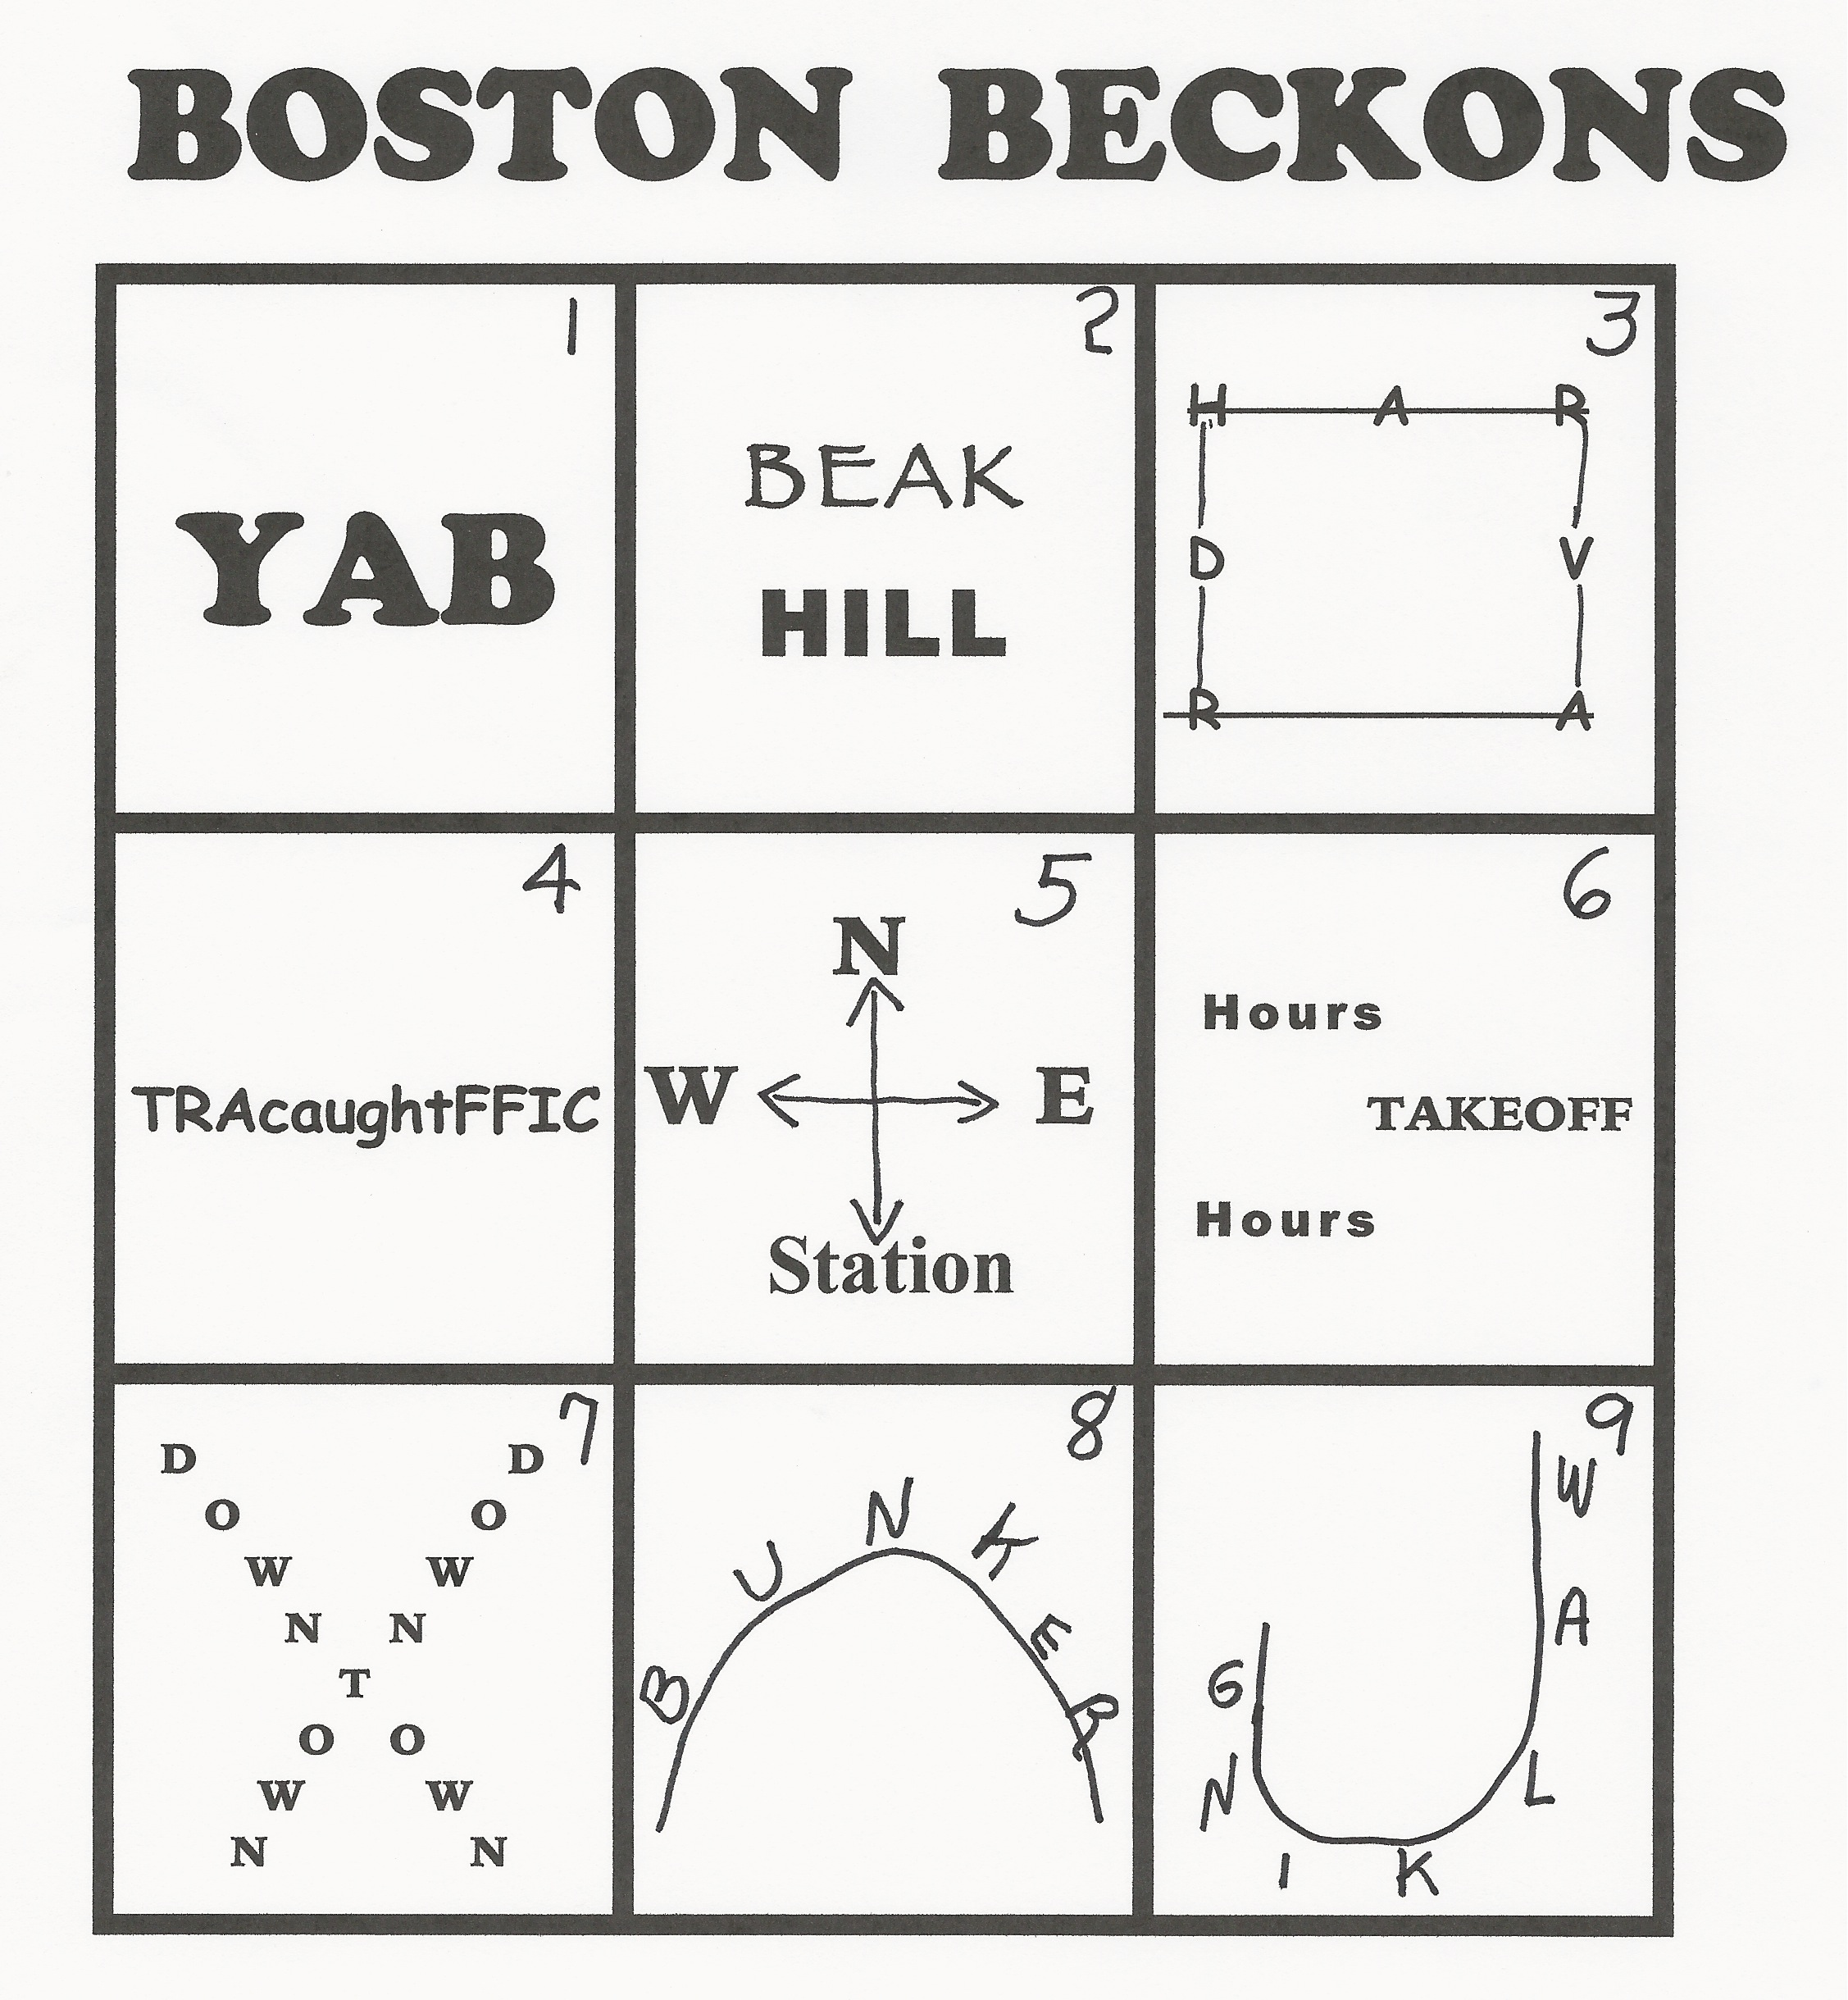 Boston Beckons A Wacky Word Puzzle From Inquiry Unlimited Practitioner Formerly Sited At Boston